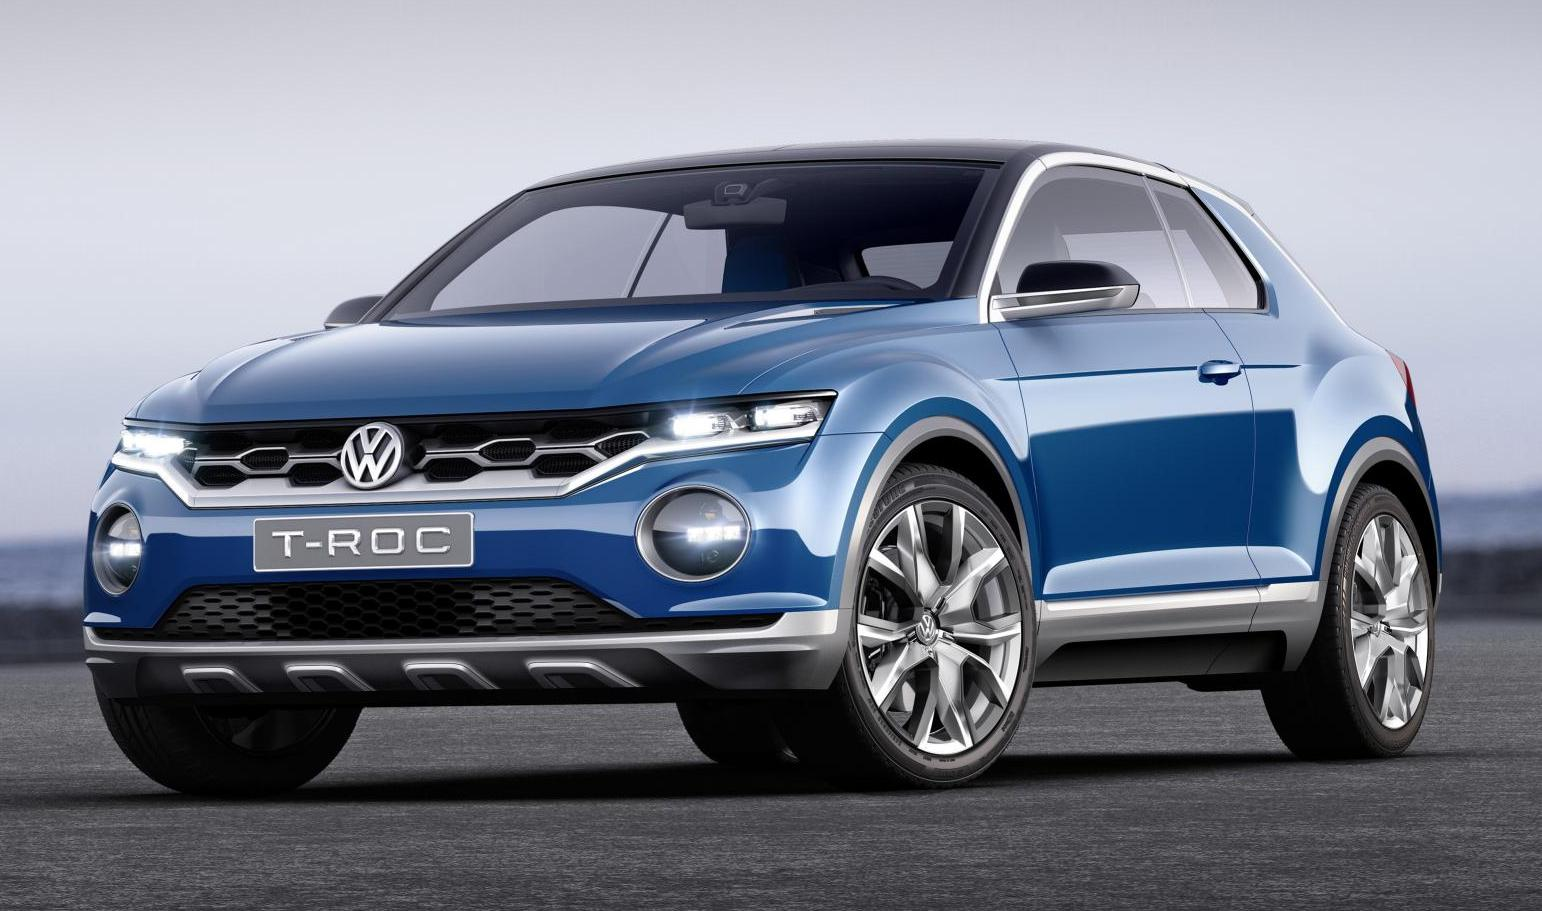 volkswagen t roc suv price specs photos launch date in india. Black Bedroom Furniture Sets. Home Design Ideas